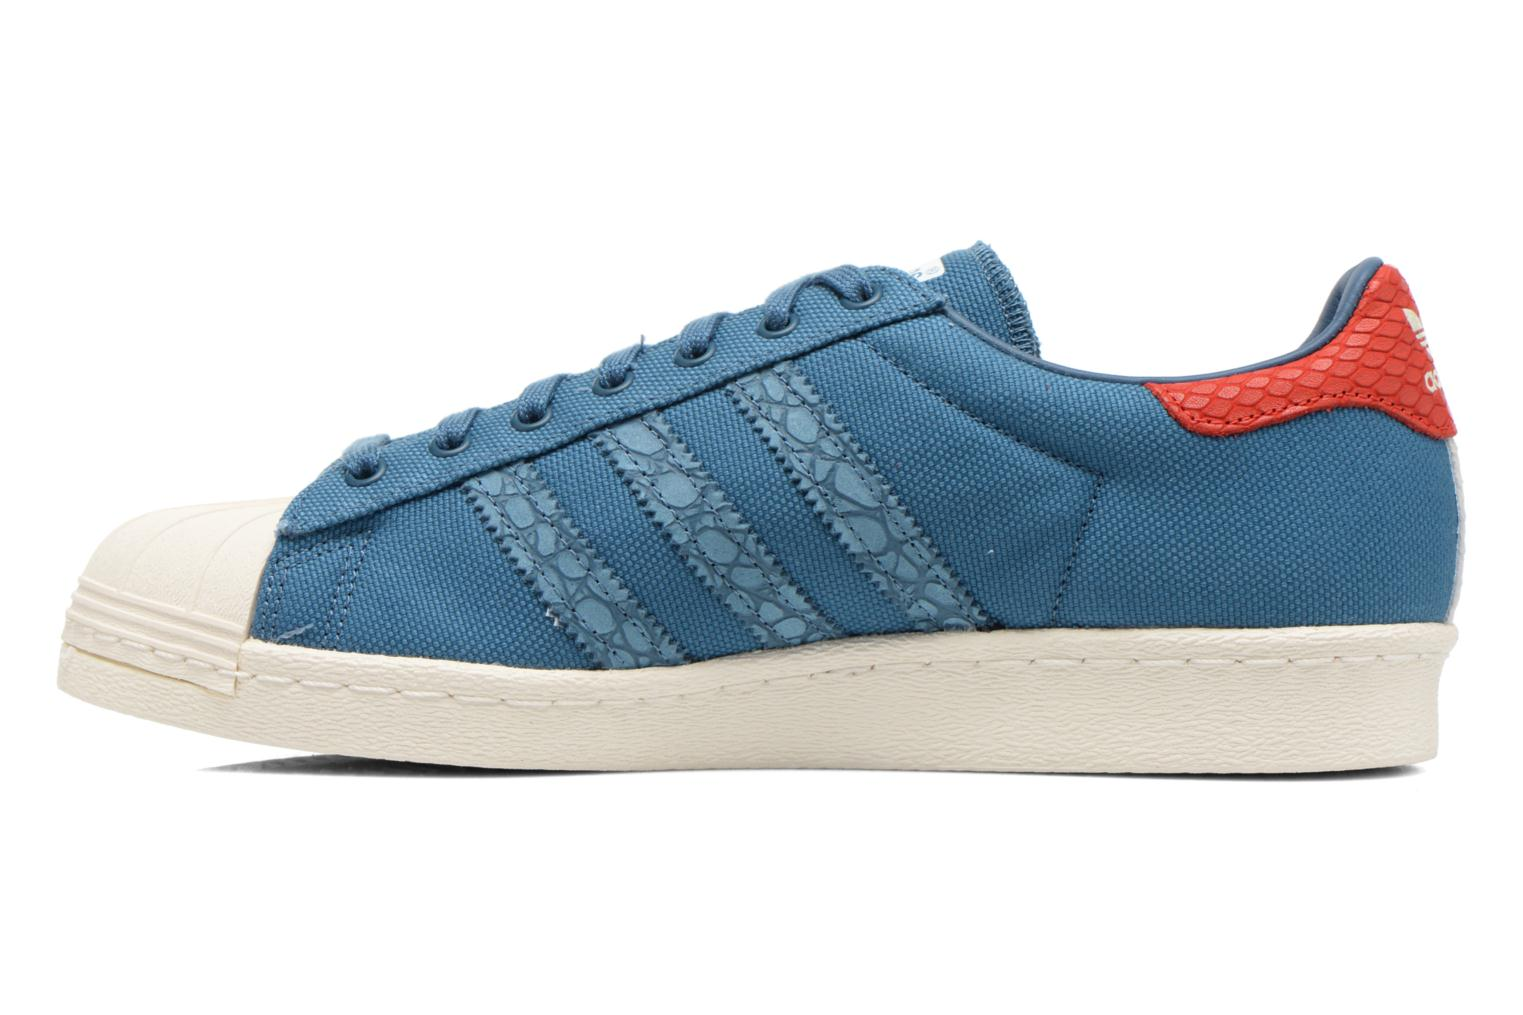 Superstar 80S Animal Blebla/Blebla/Blacra